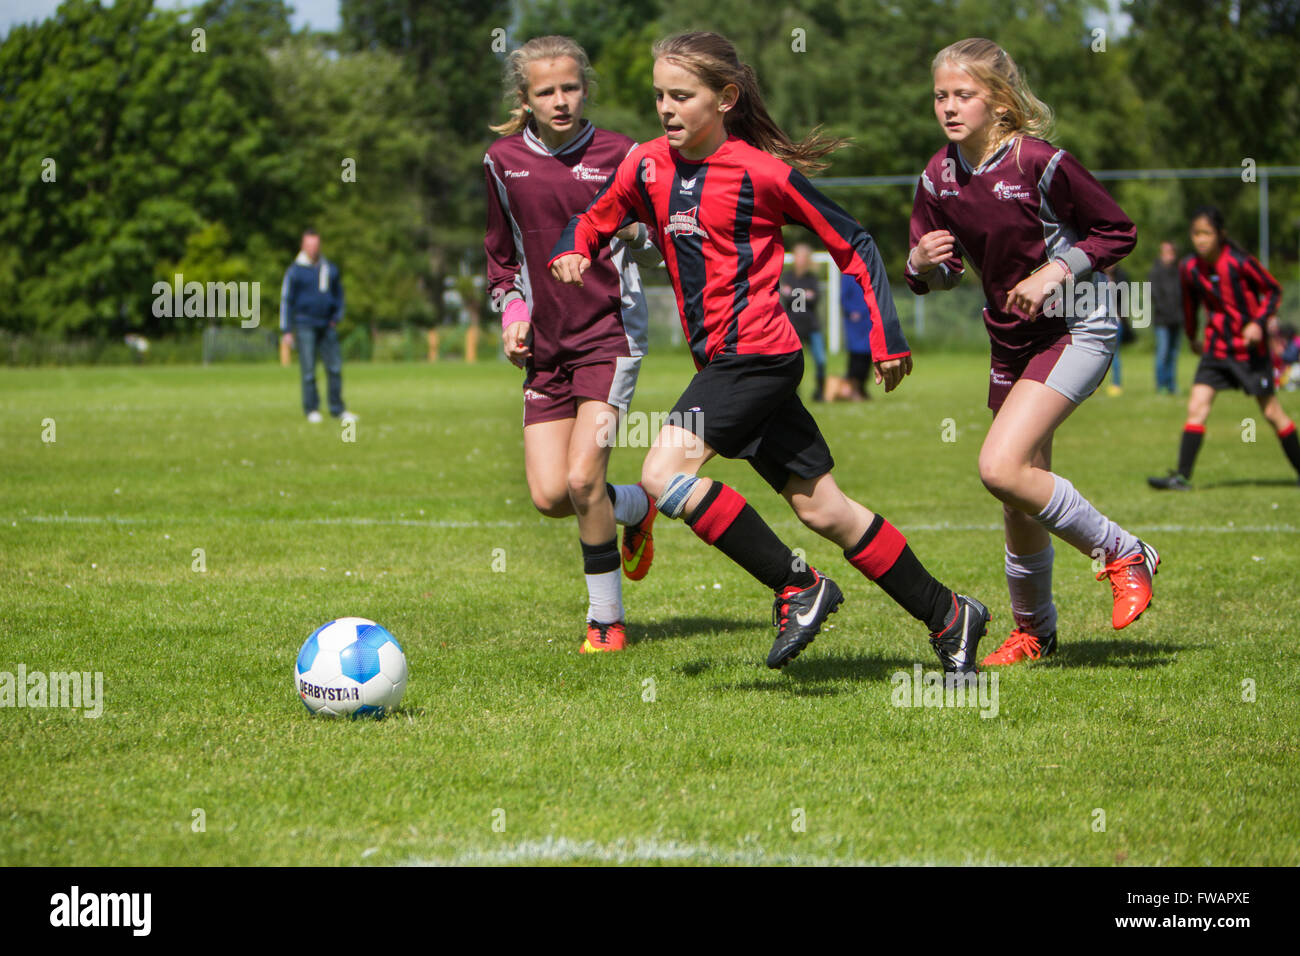 Girls playing football in Holland - Stock Image